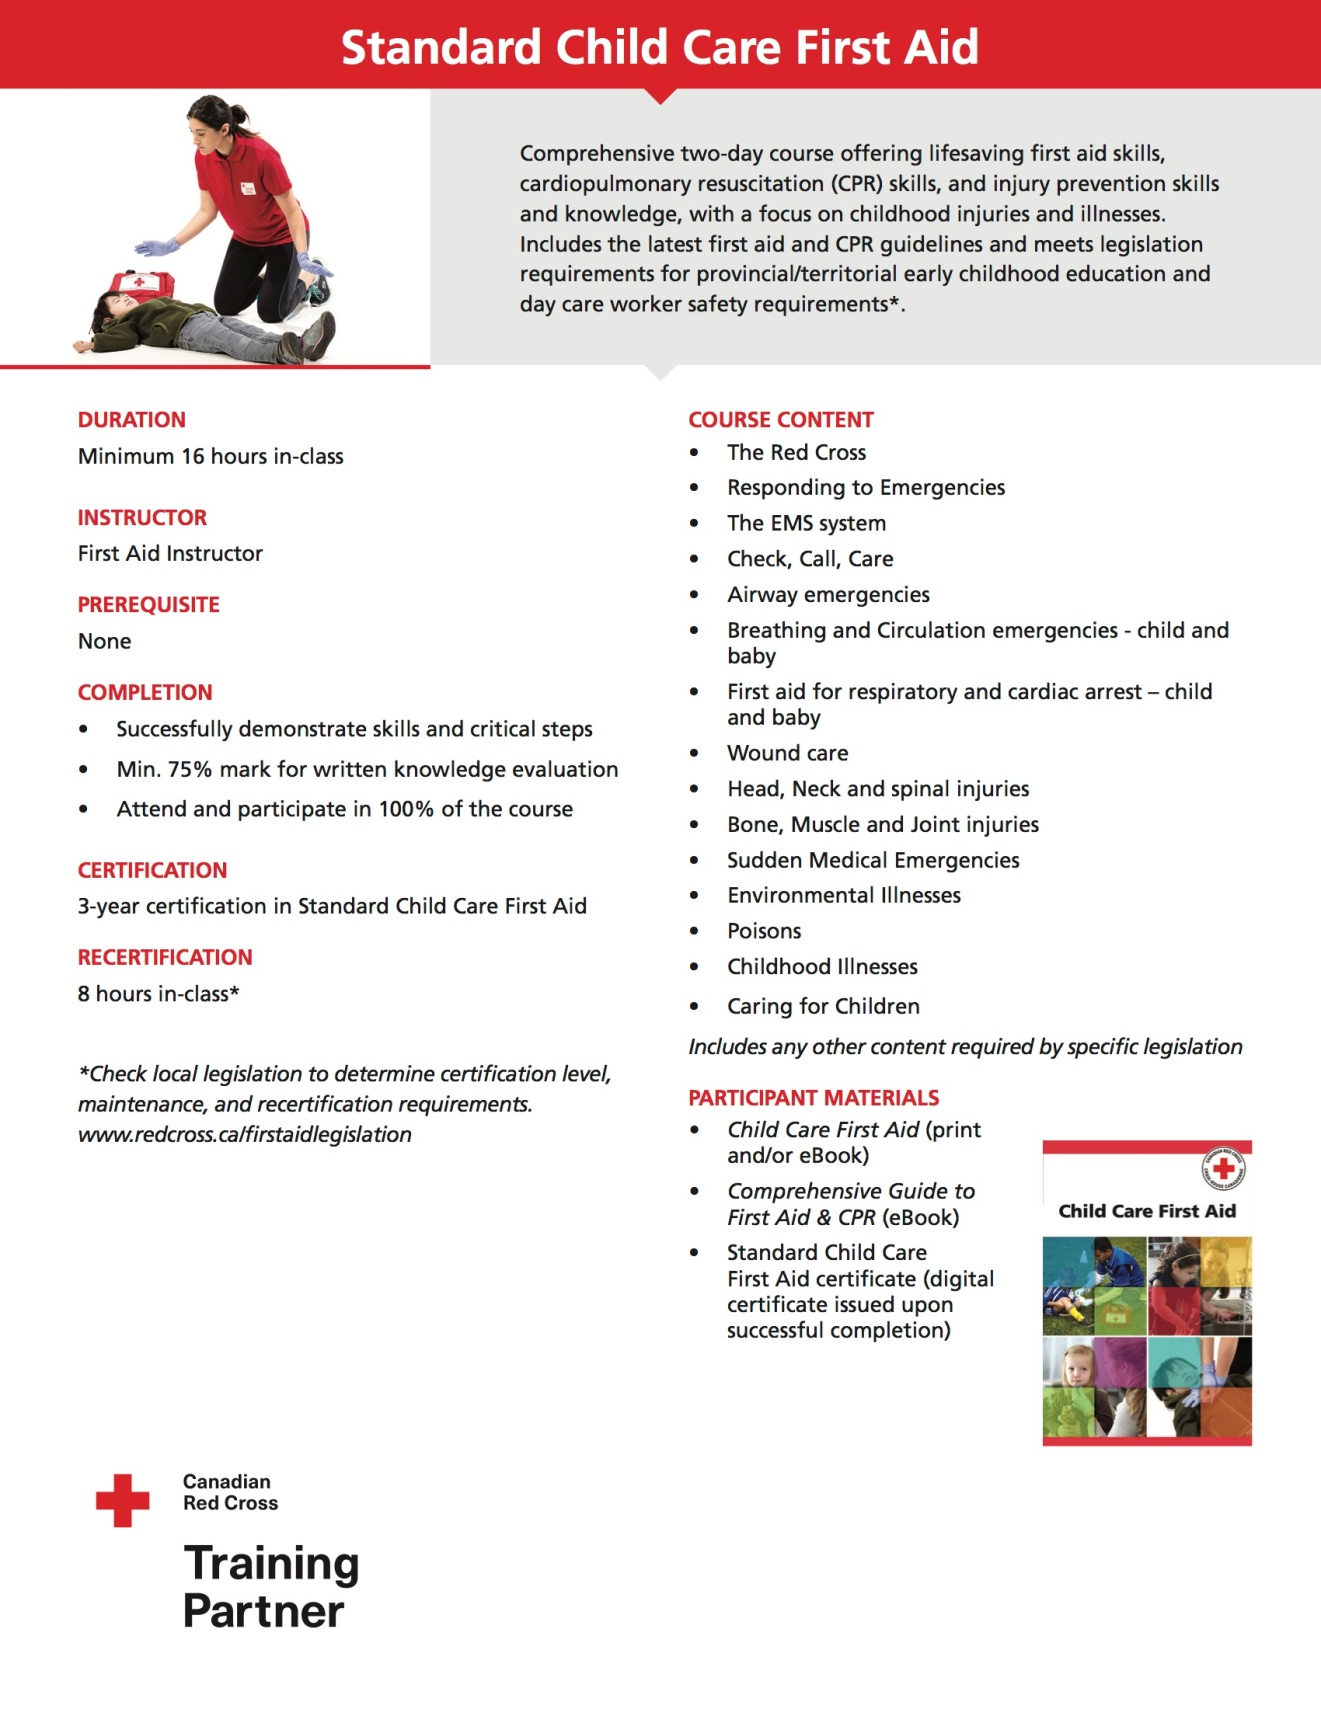 Standard Child Care First Aid LifeSkills First Aid